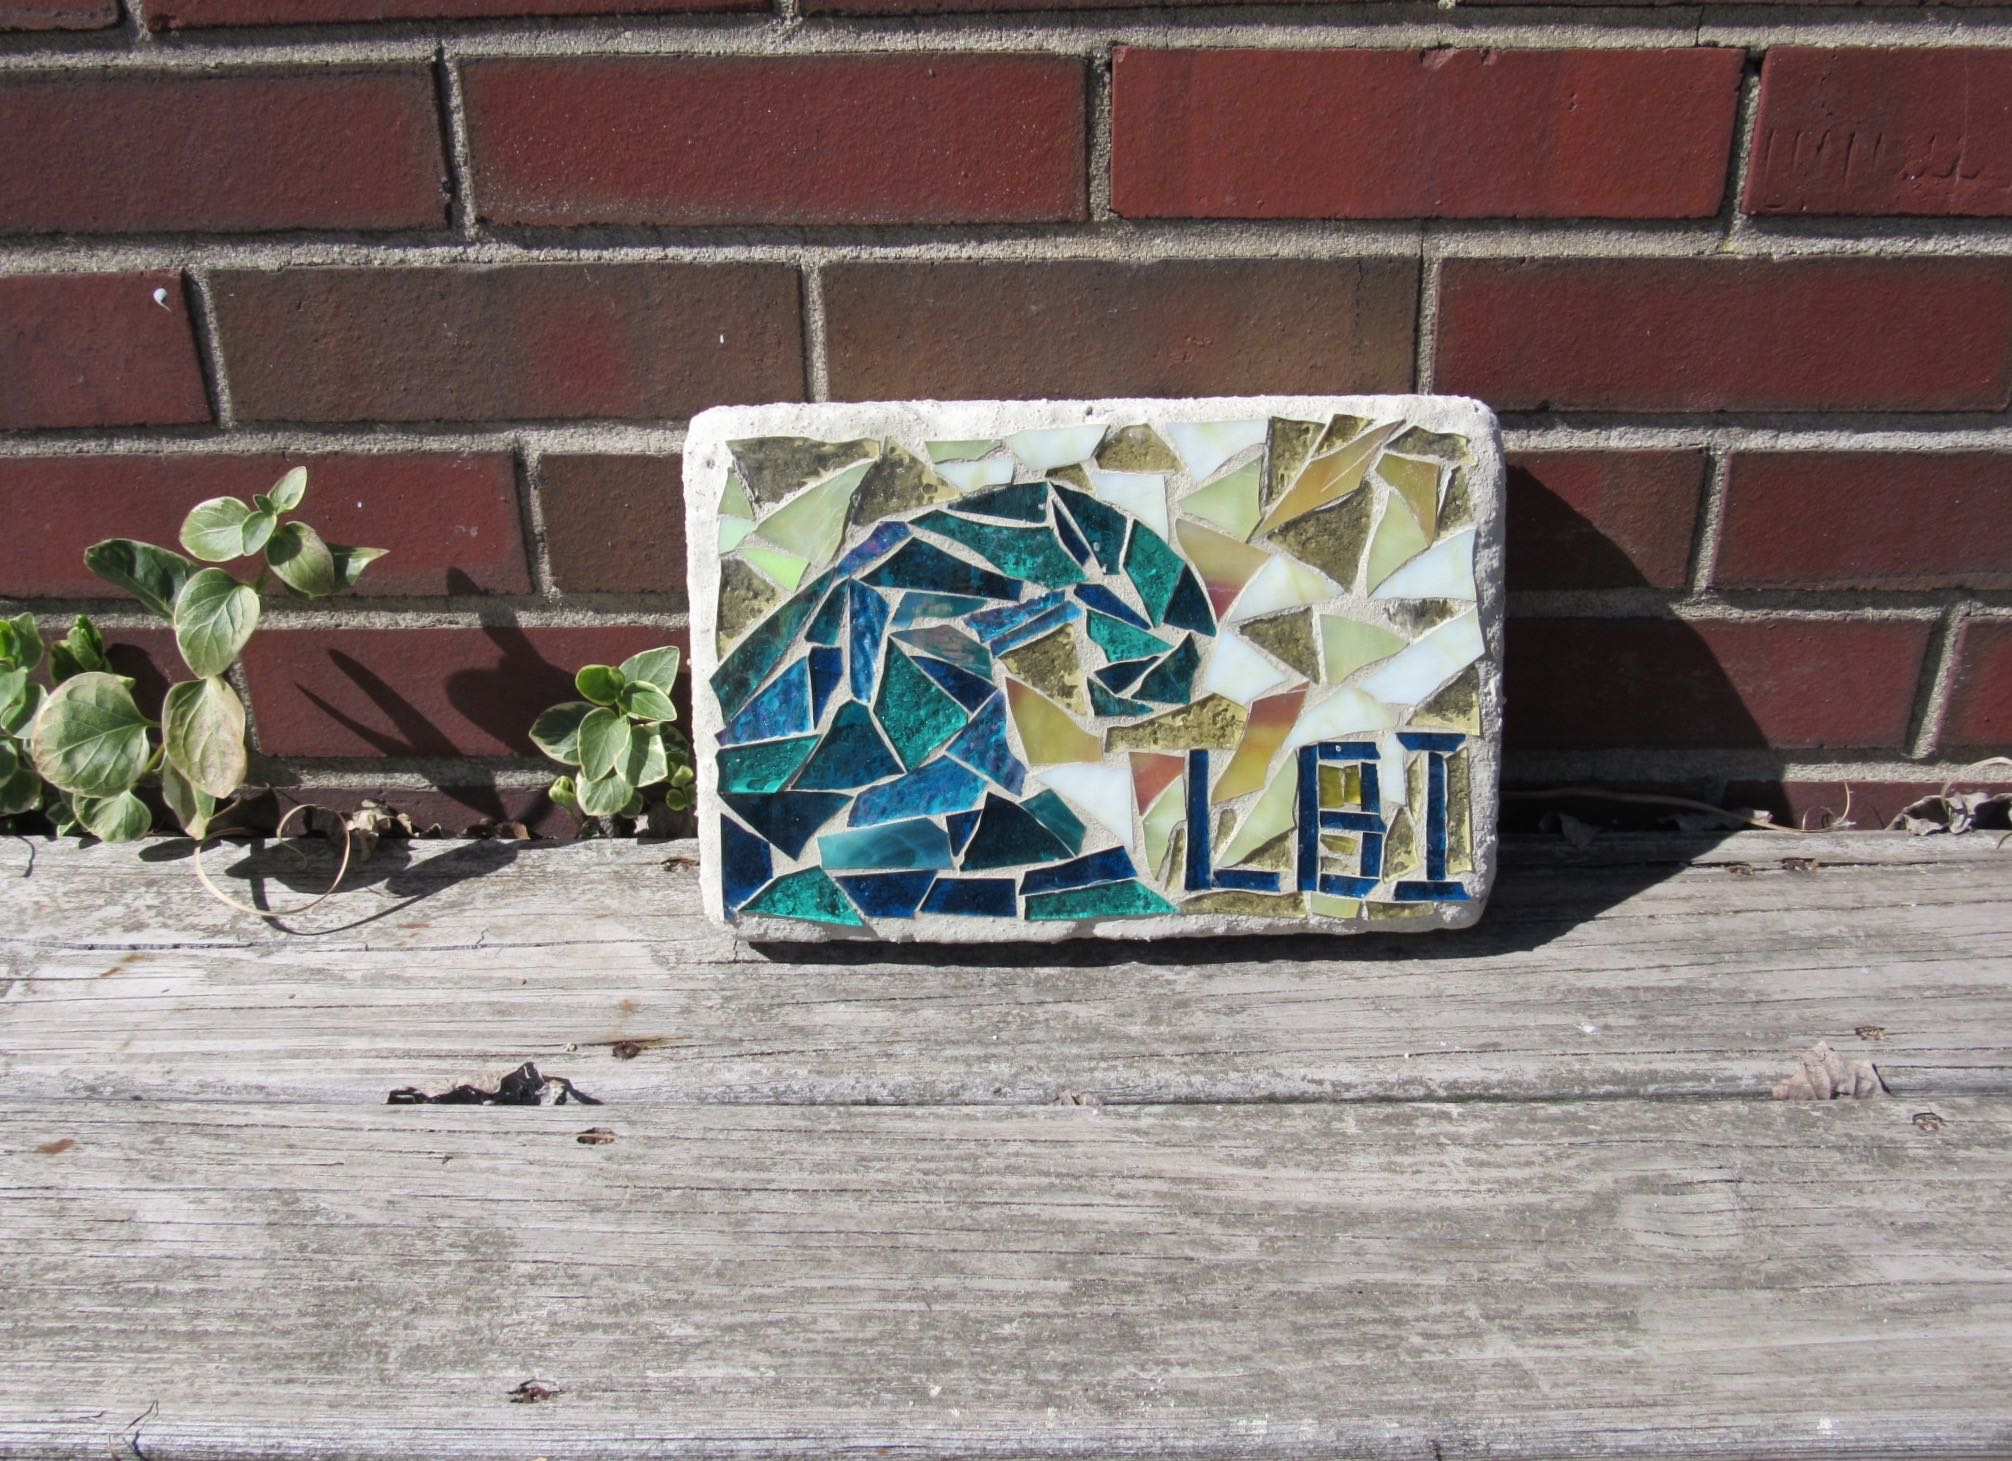 """Here is a 6"""" X 9.5 """"garden brick with a wave and LBI on it. Sweet for your garden!"""